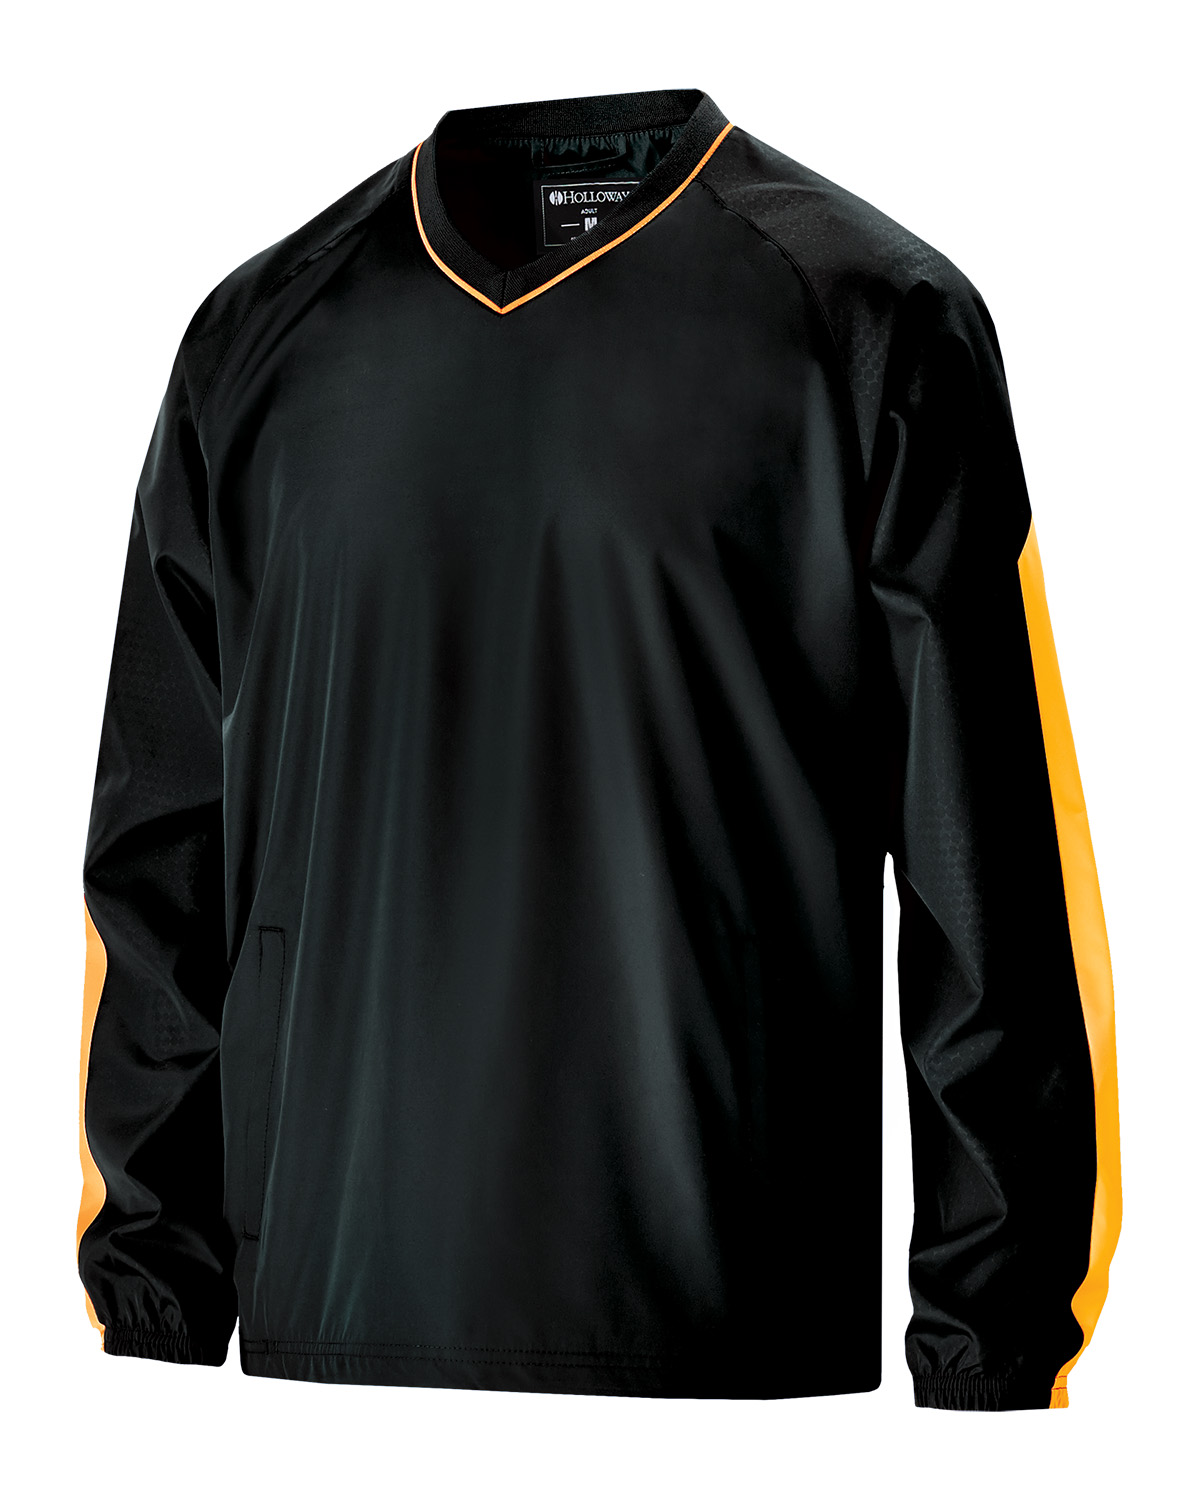 Holloway 229019 - Adult Polyester Bionic Windshirt